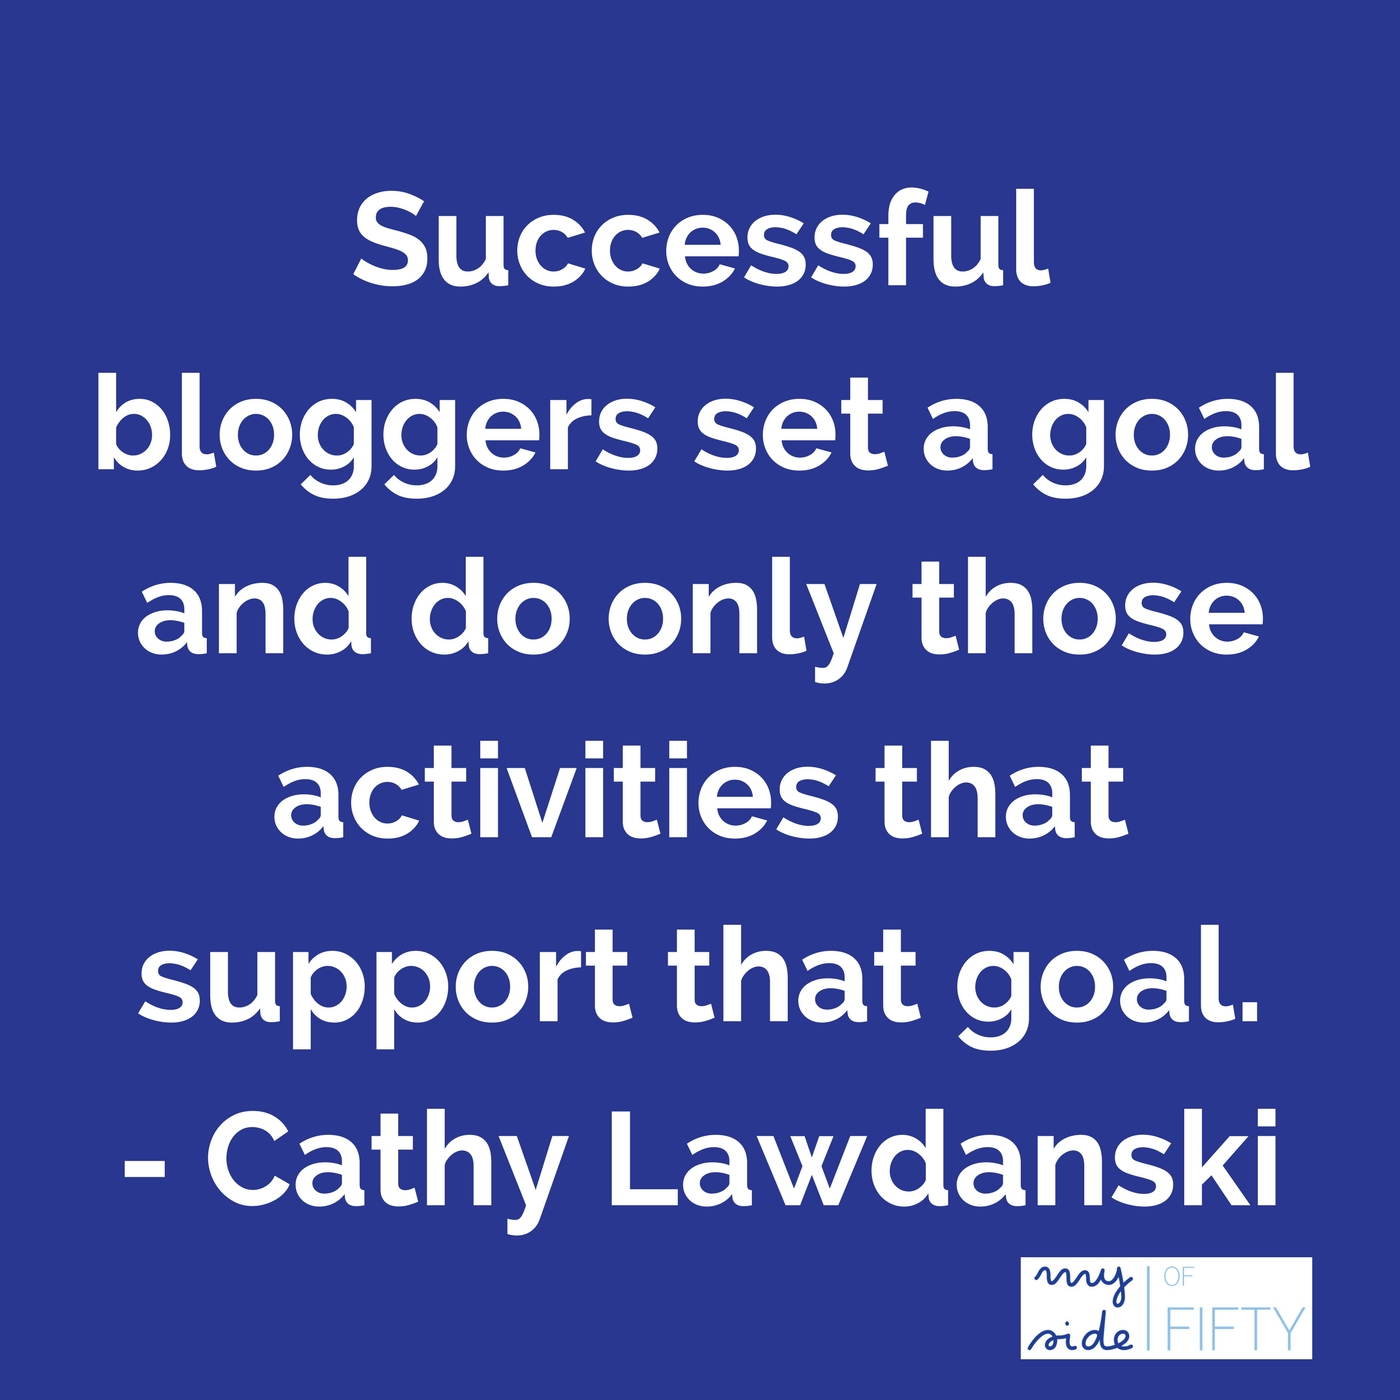 Top 4 Things Successful Bloggers Do. Have a goal. Evaluate their progress. Know what to eliminate. Work toward their goal efficiently.Top 4 Things Successful Bloggers Do. Have a goal. Evaluate their progress. Know what to eliminate. Work toward their goal efficiently.